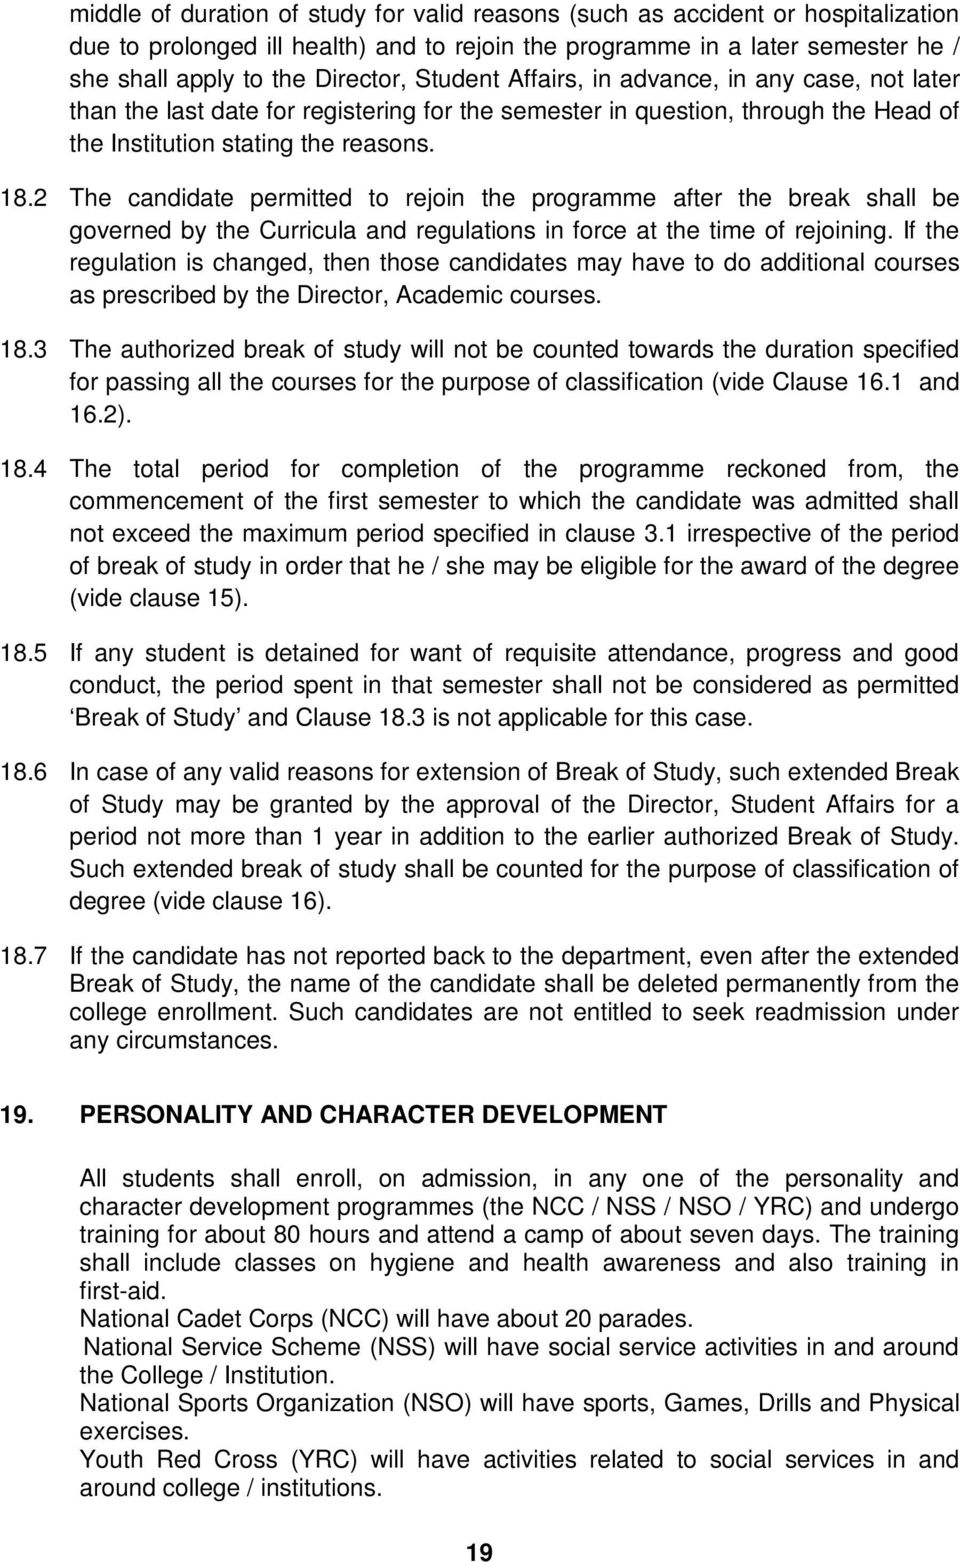 2 The candidate permitted to rejoin the programme after the break shall be governed by the Curricula and regulations in force at the time of rejoining.